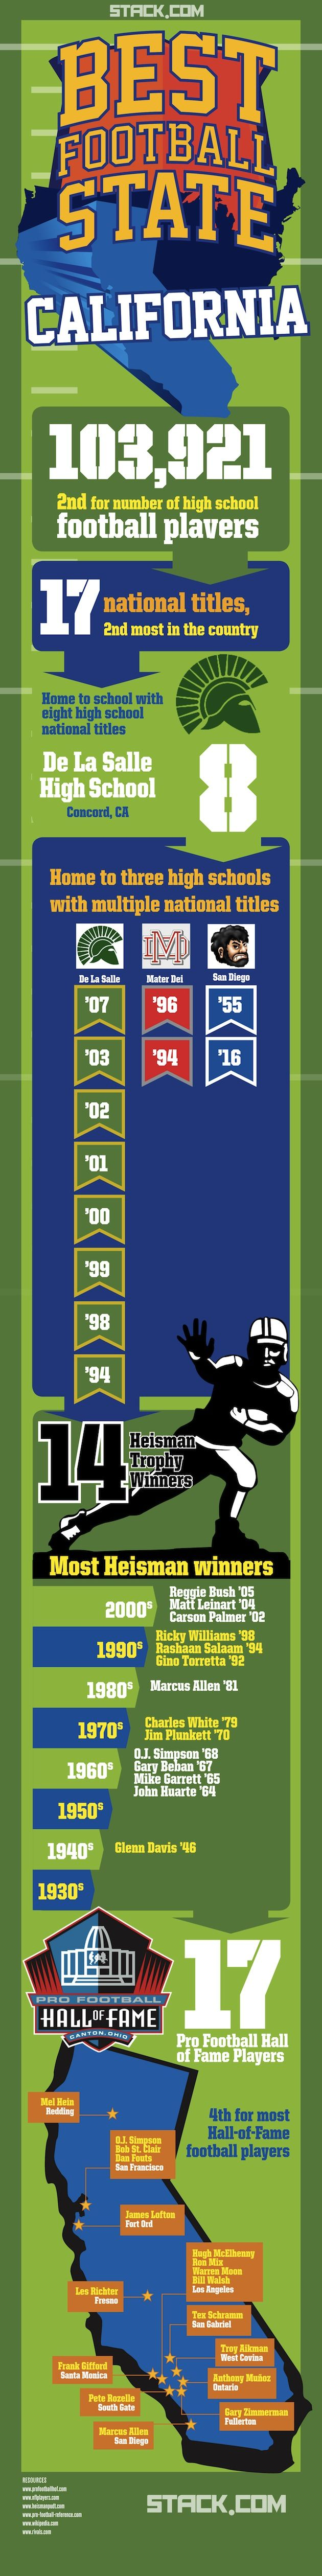 Why California is the Best Football State (INFOGRAPHIC)